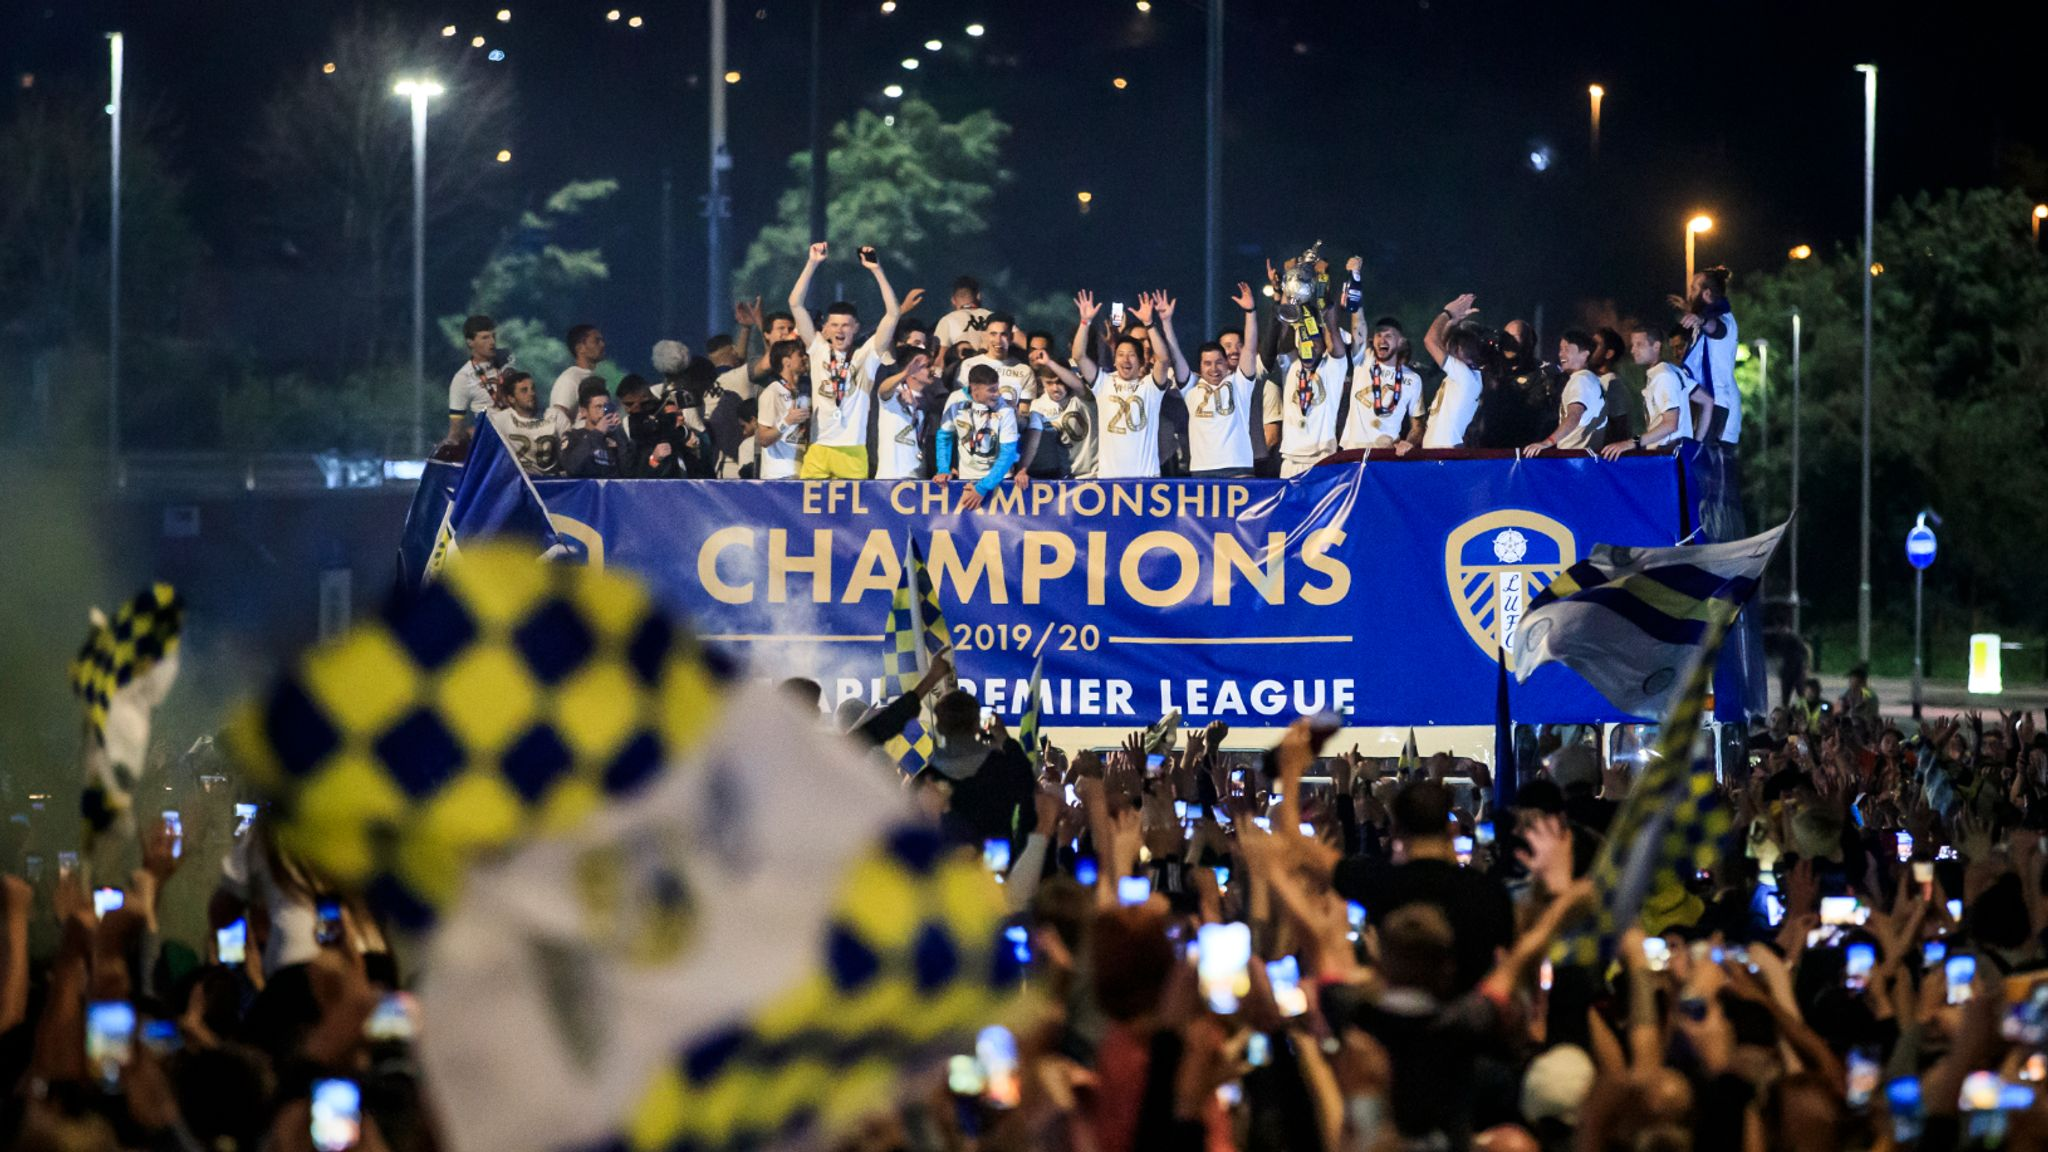 Leeds United were criticized for holding a bus parade